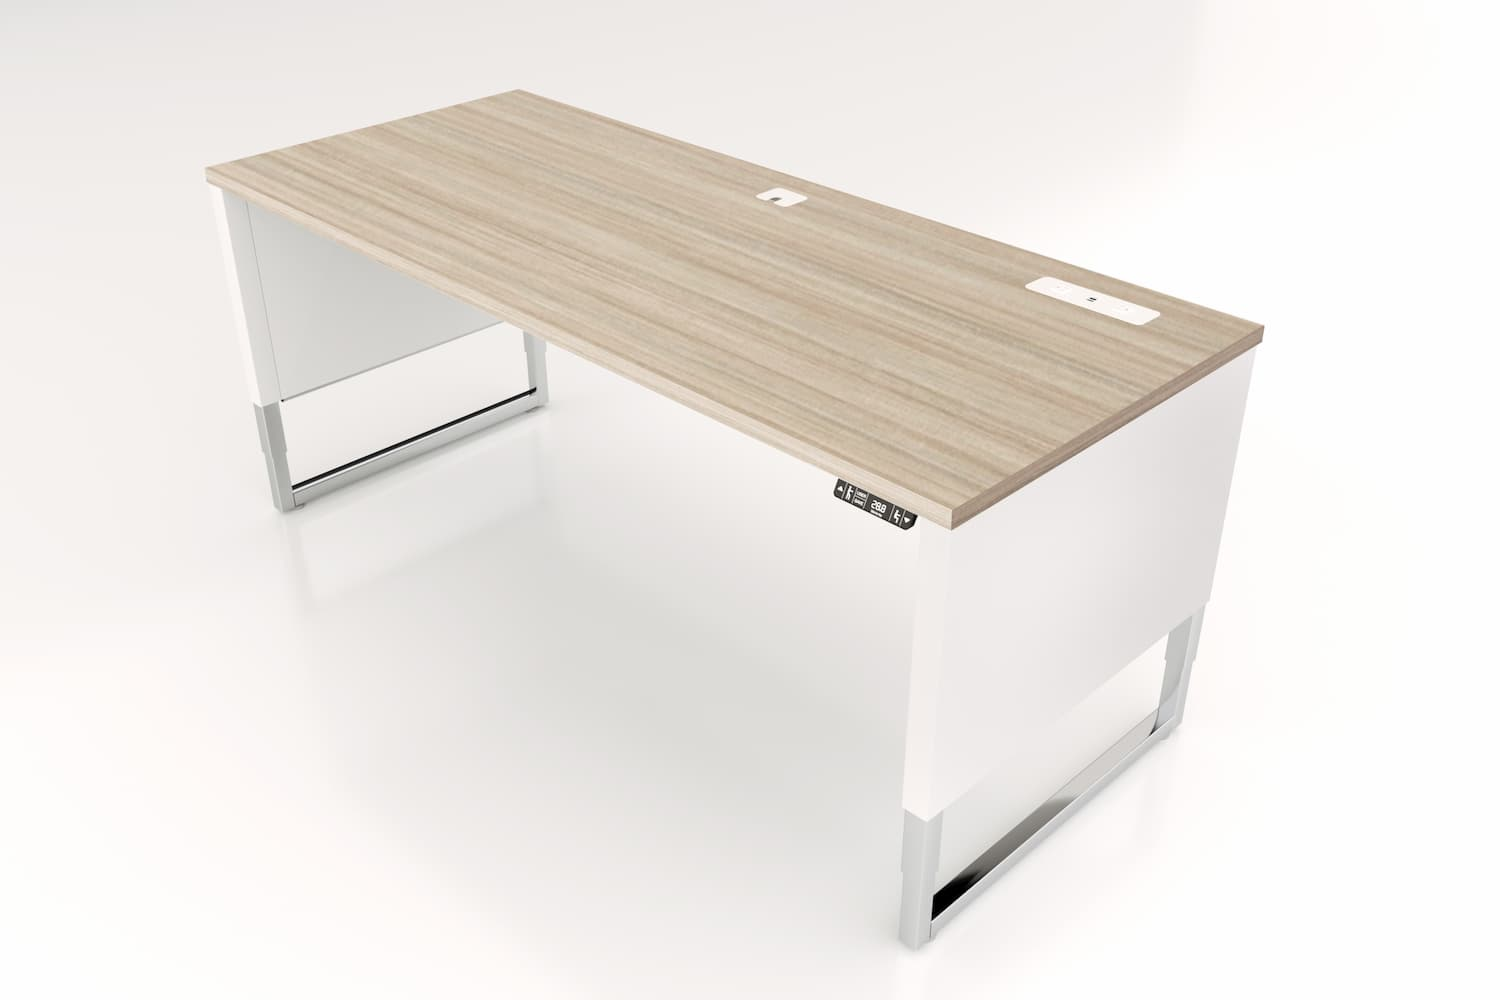 Advent-Desk-ADV-7230-WH-Custom-Top-13